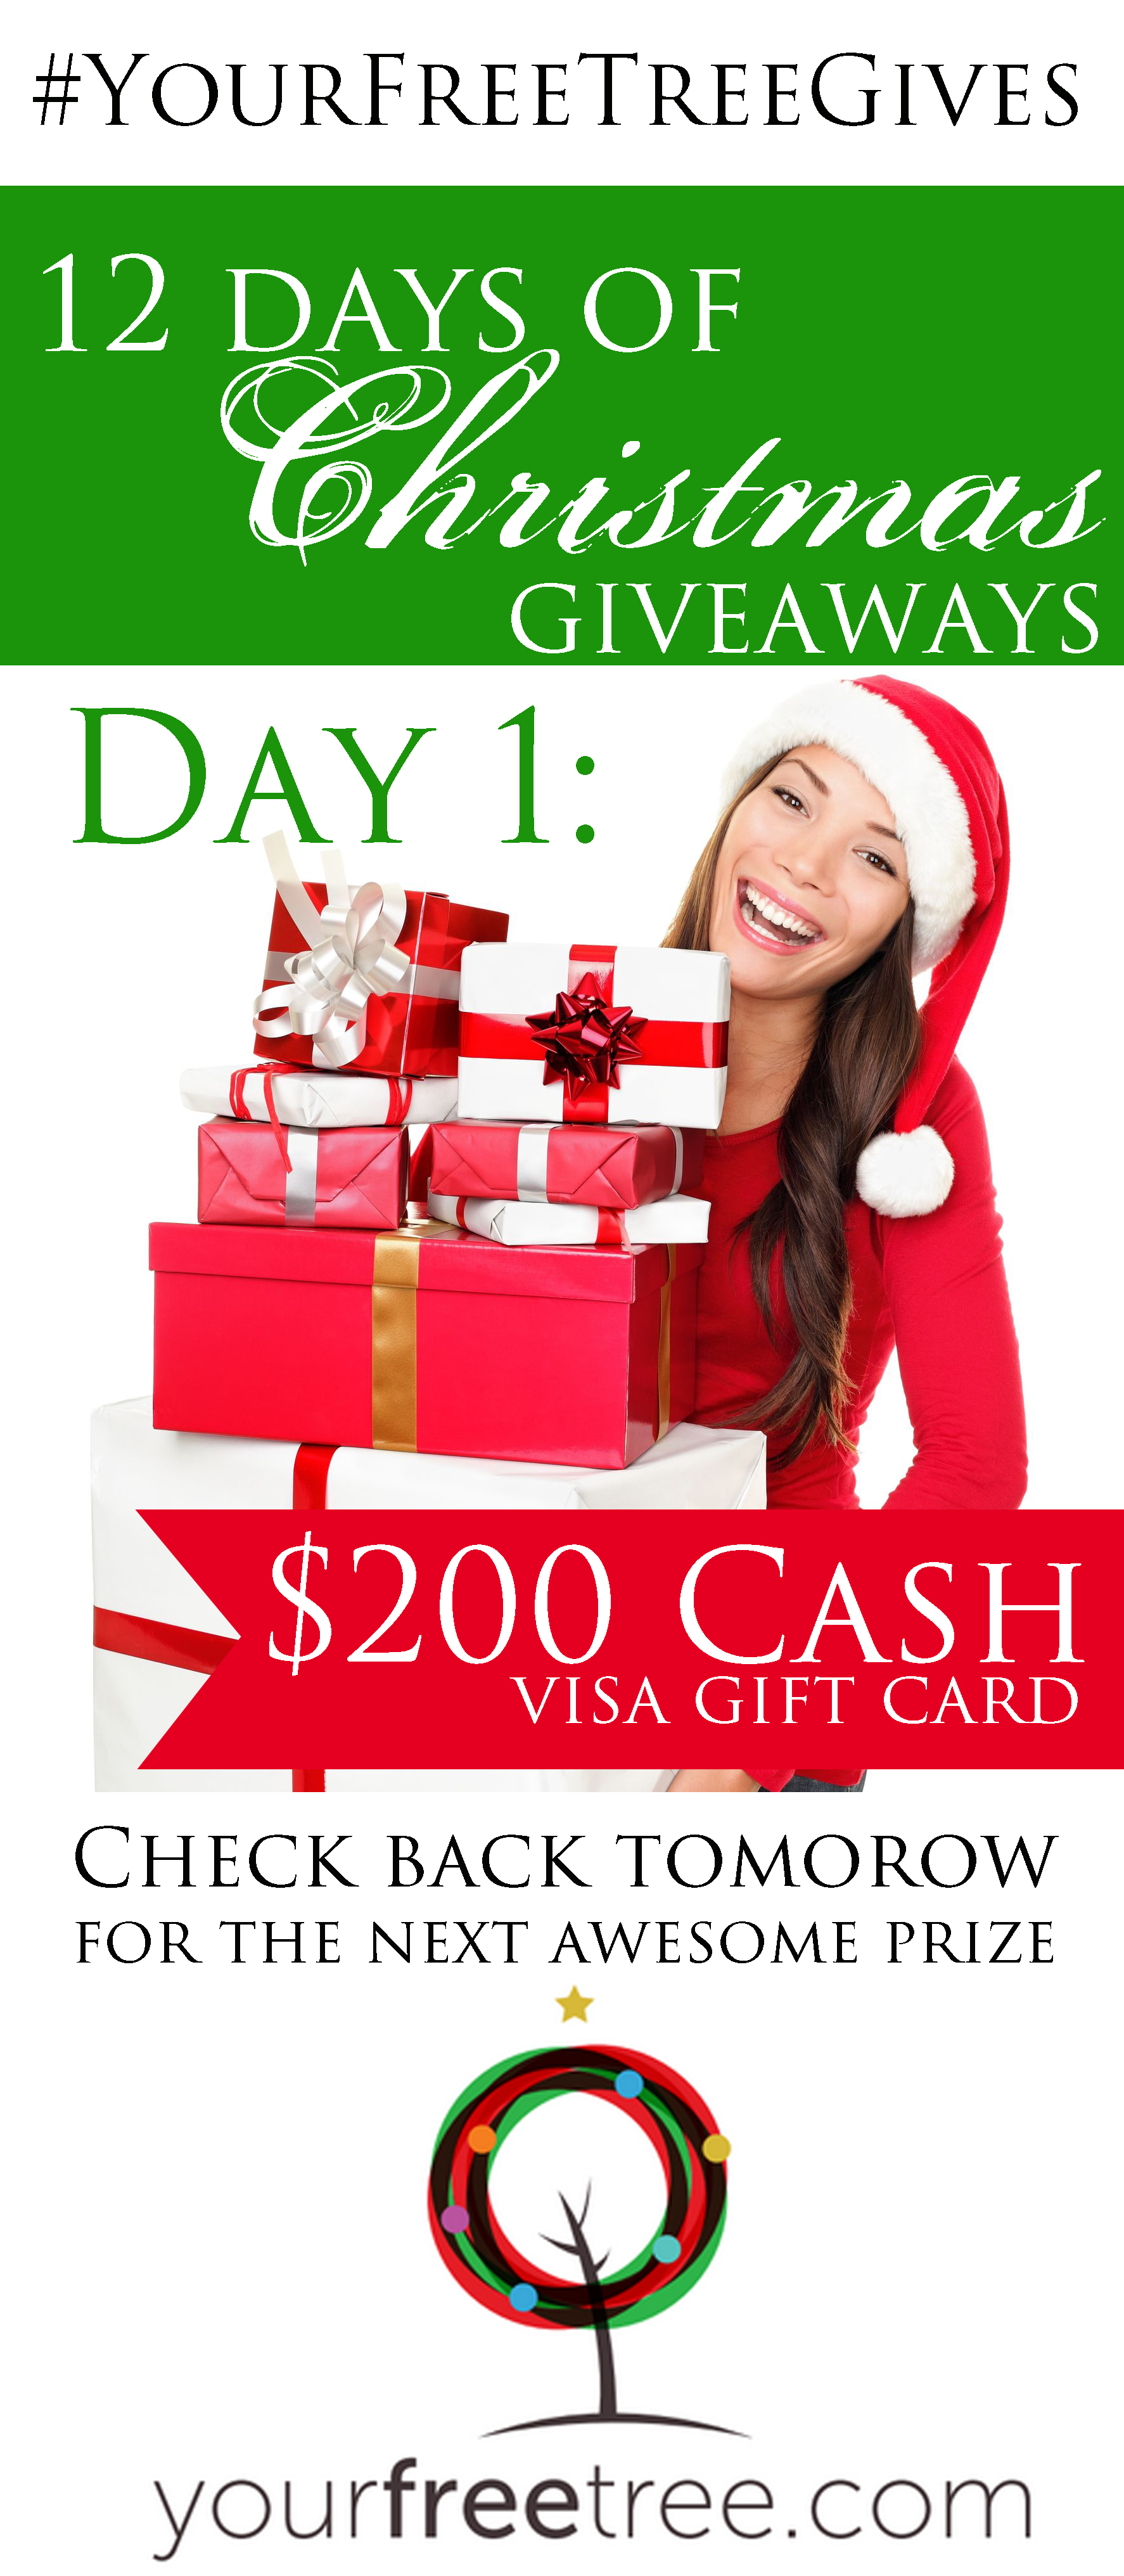 YourFreeTree.com 12 Days of Christmas Giveaway!